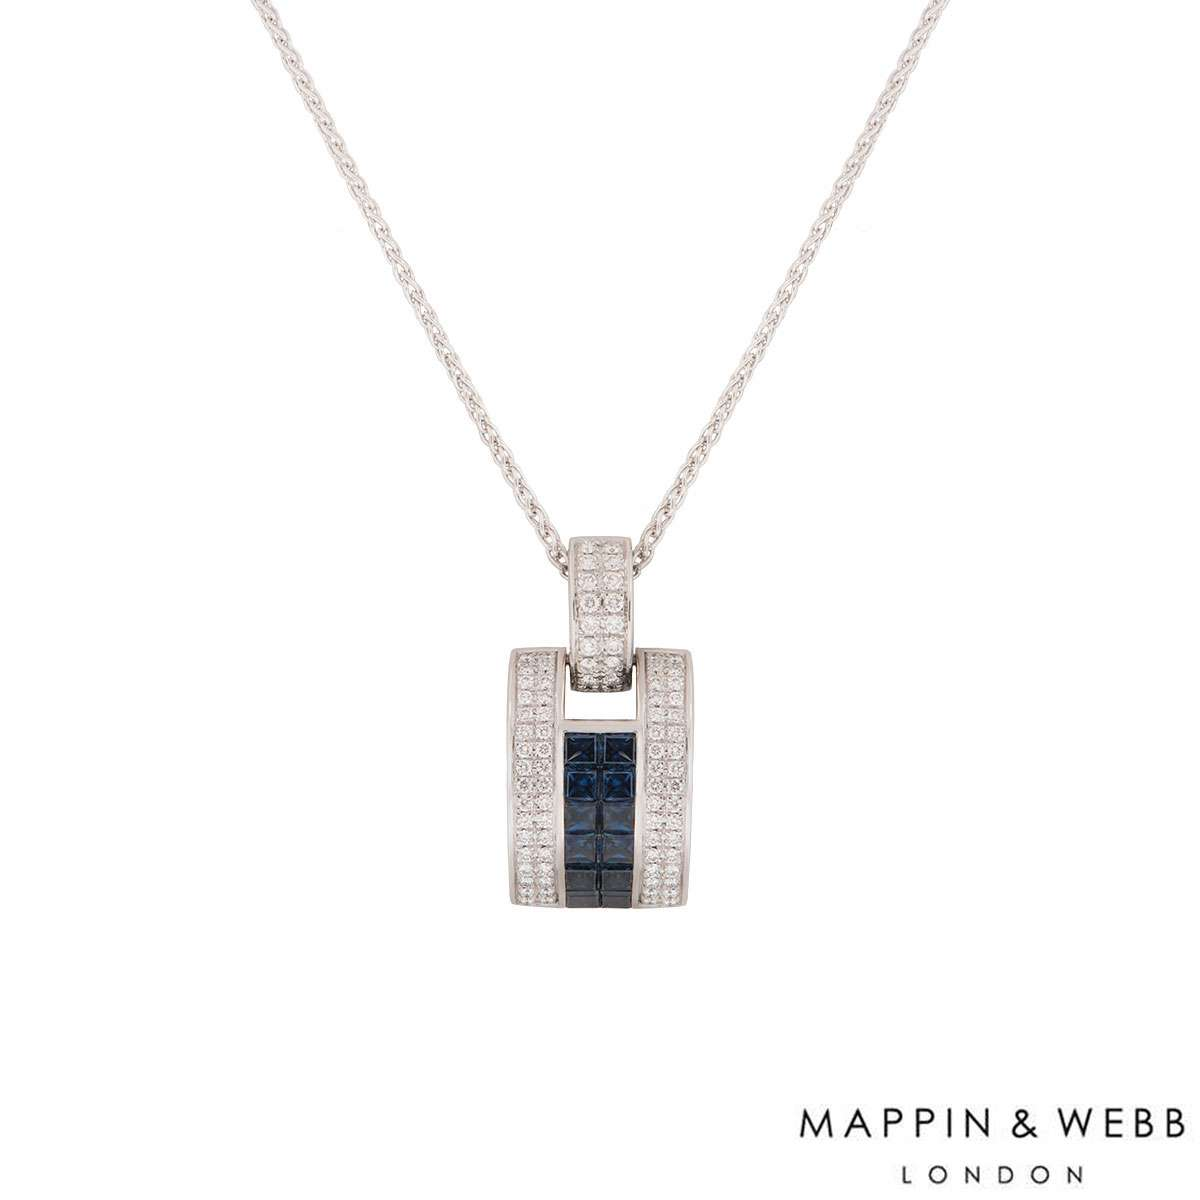 Mappin & Webb White Gold Diamond and Sapphire Pendant